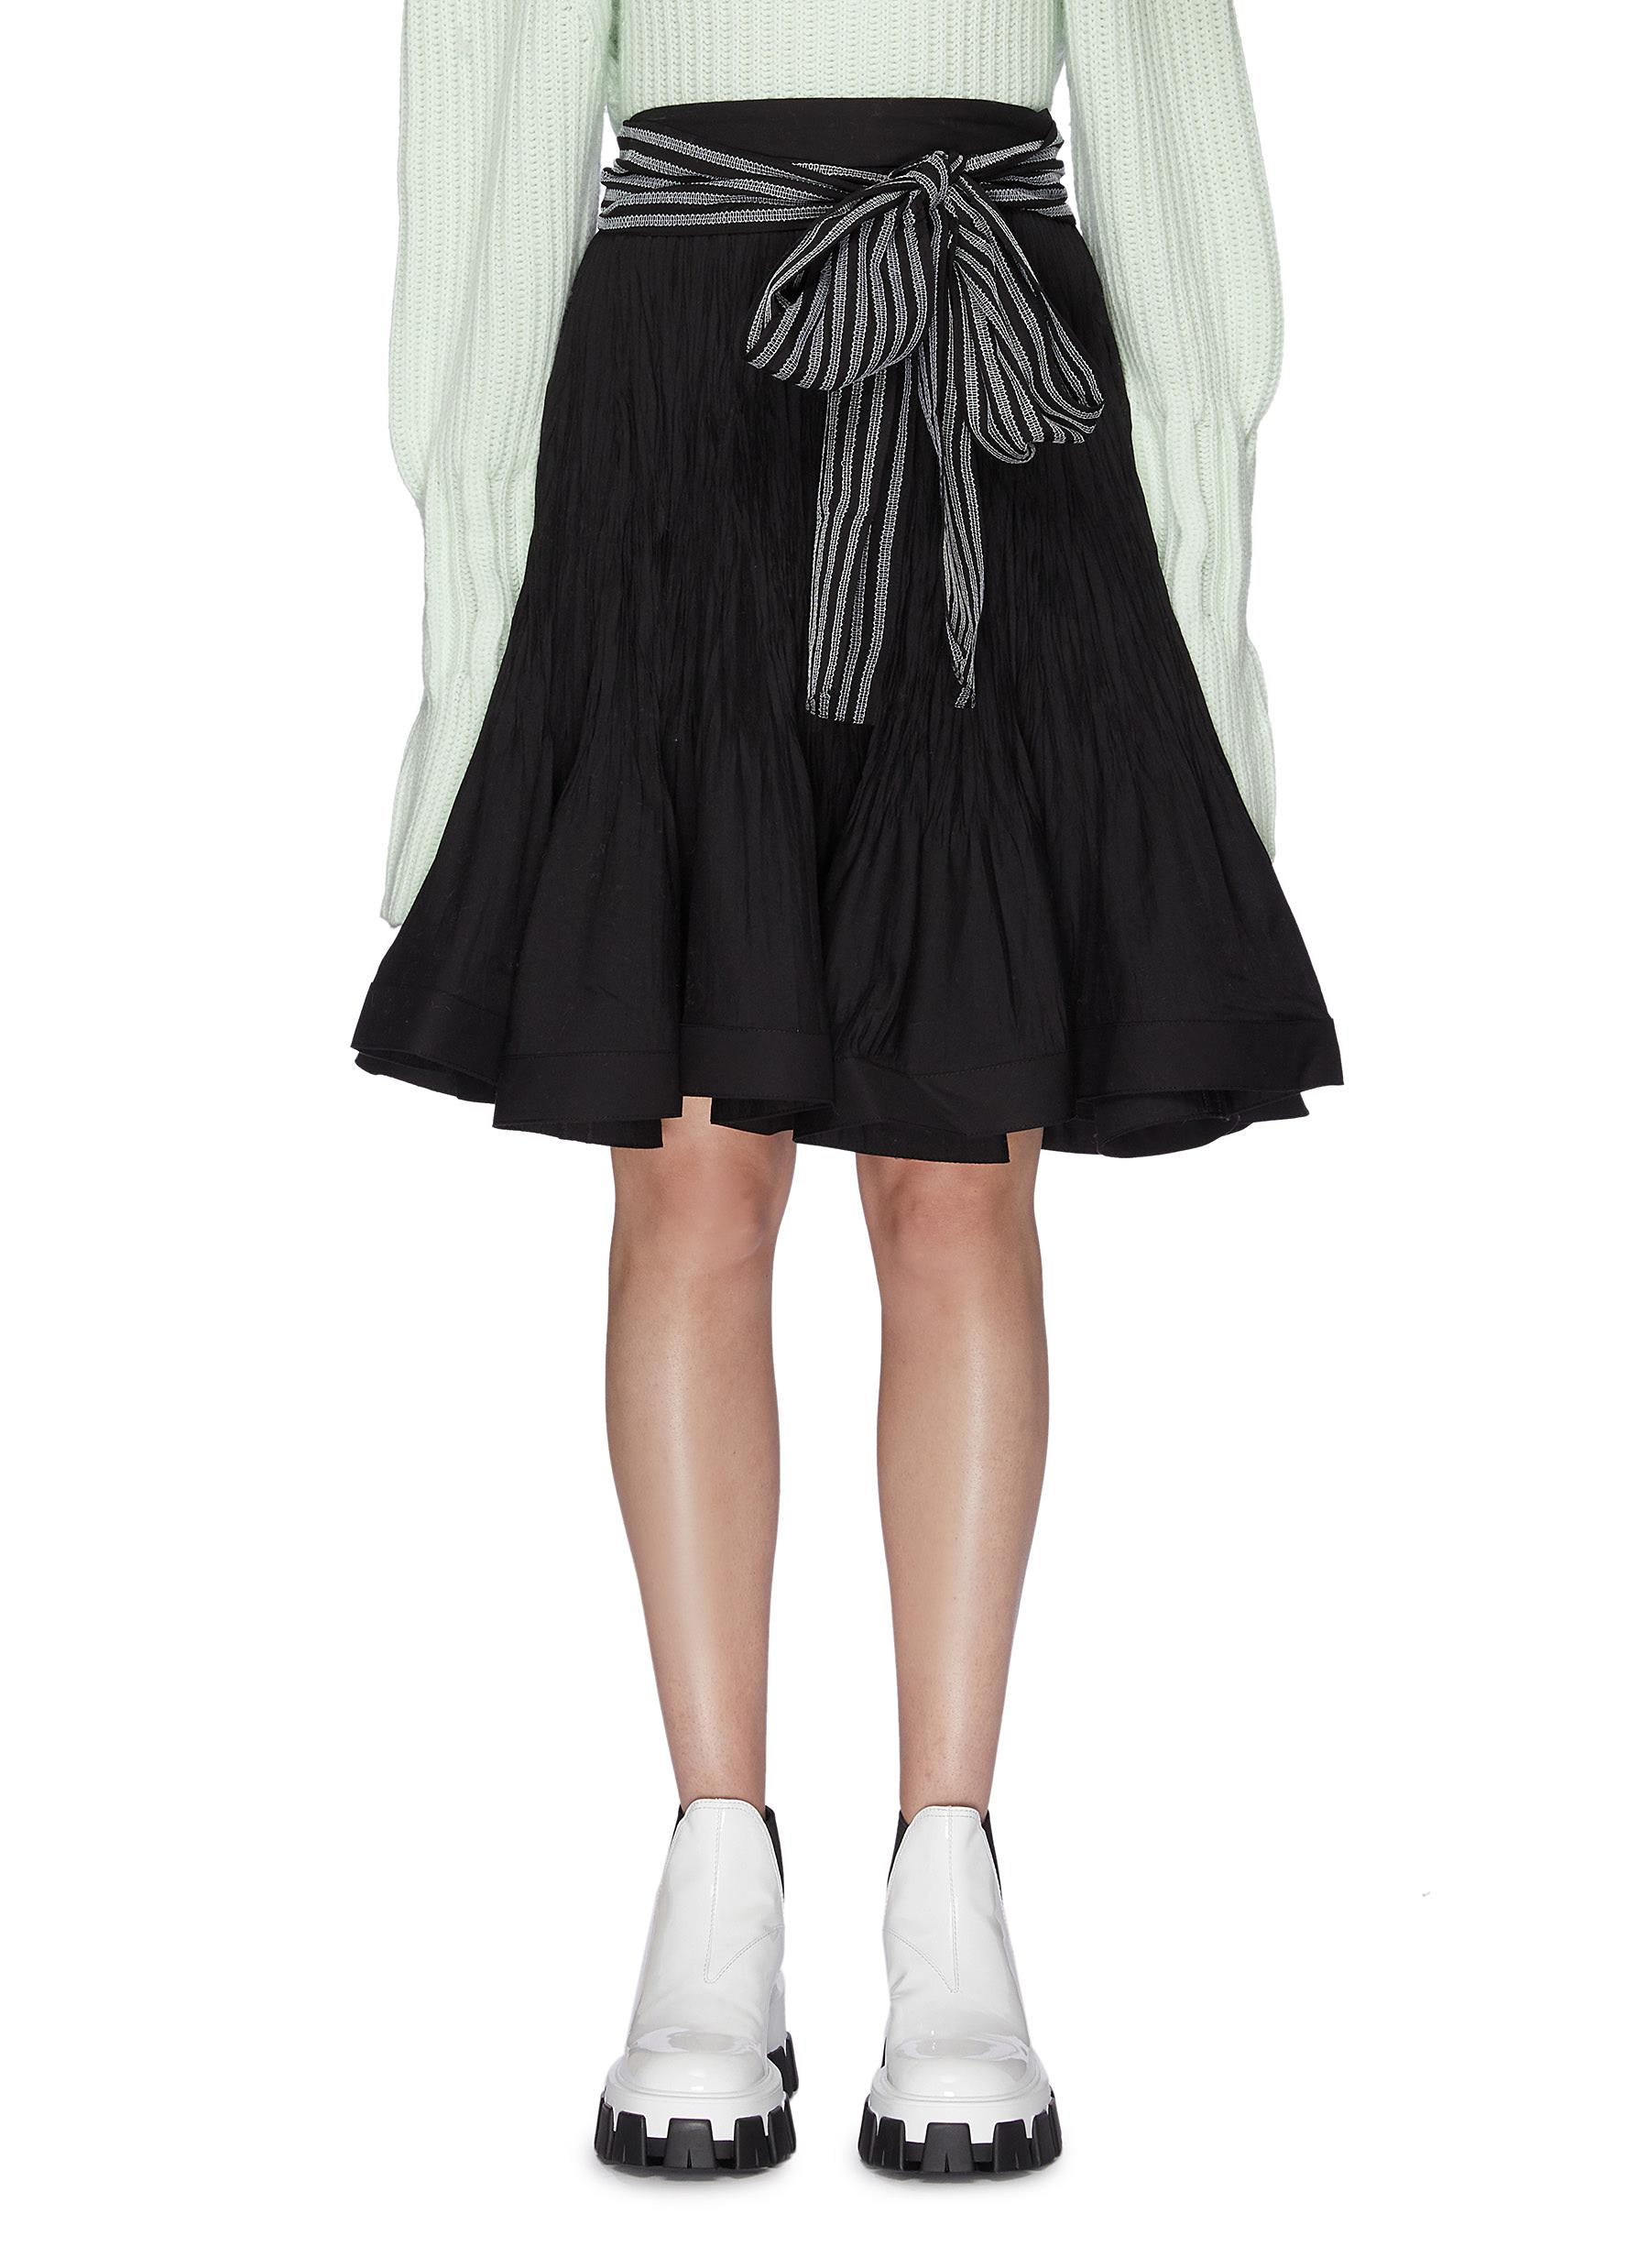 Sash belted pleated flared skirt by Jw Anderson